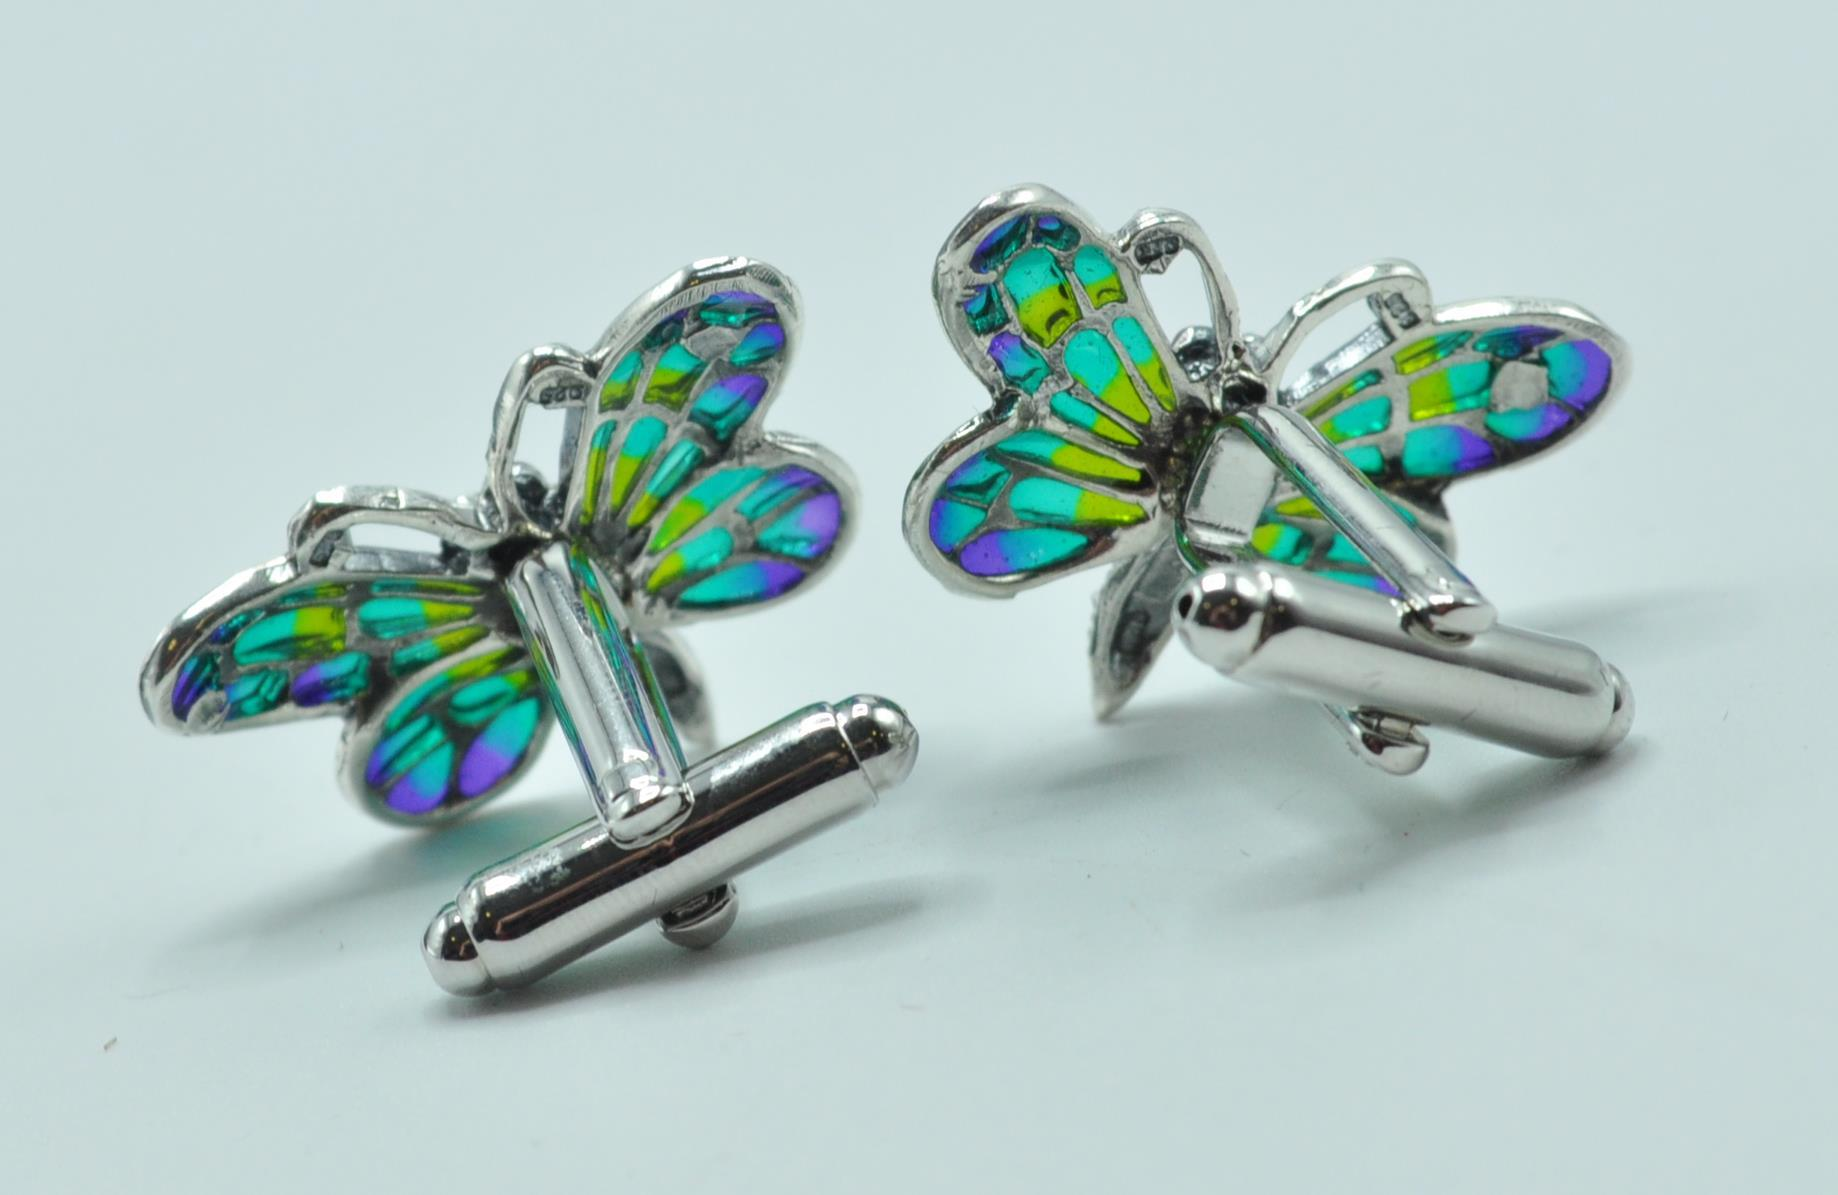 PAIR OF STAMPED 925 SILVER BUTTERFLY CUFFLINKS. - Image 4 of 4